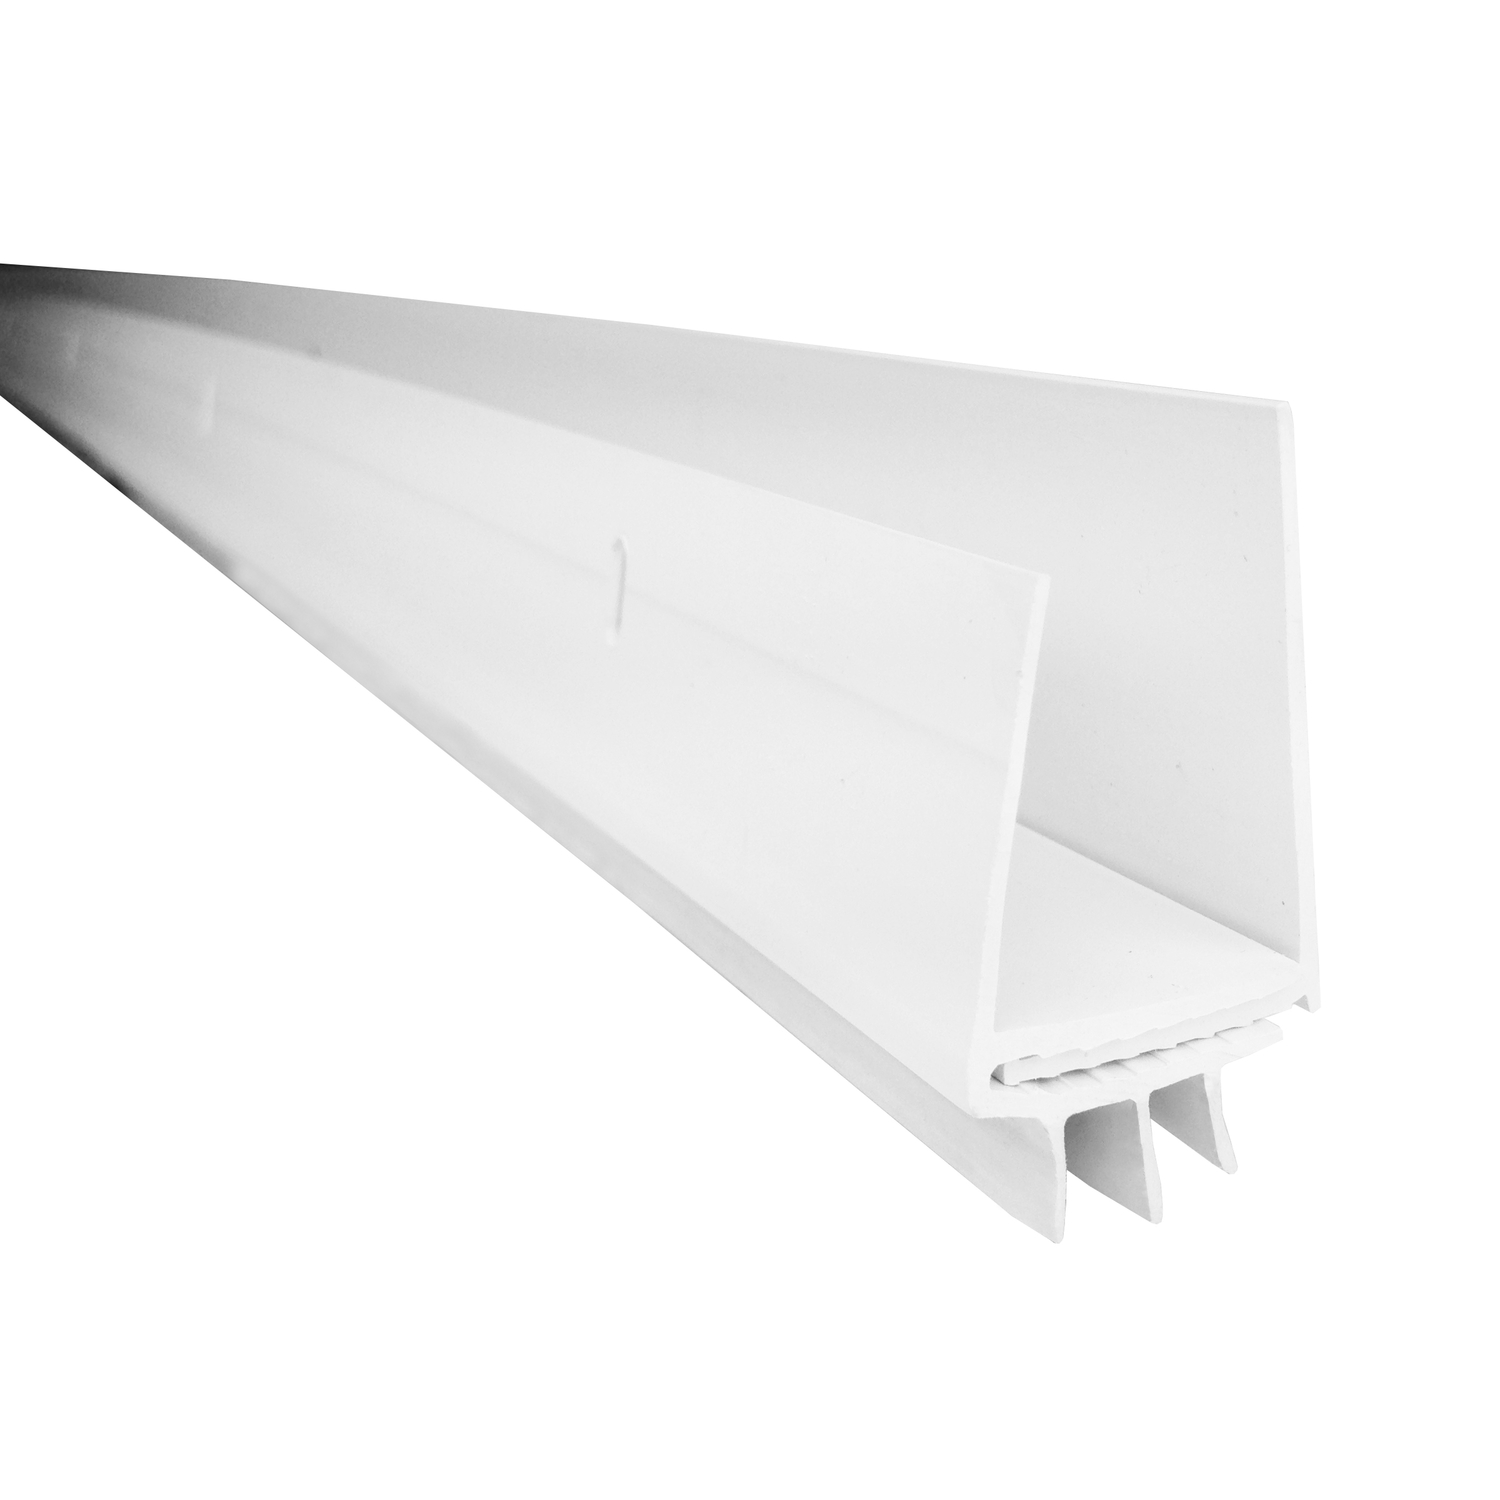 Incroyable M D Building Products White Vinyl 3 Ft. L X 3/4 In. Door